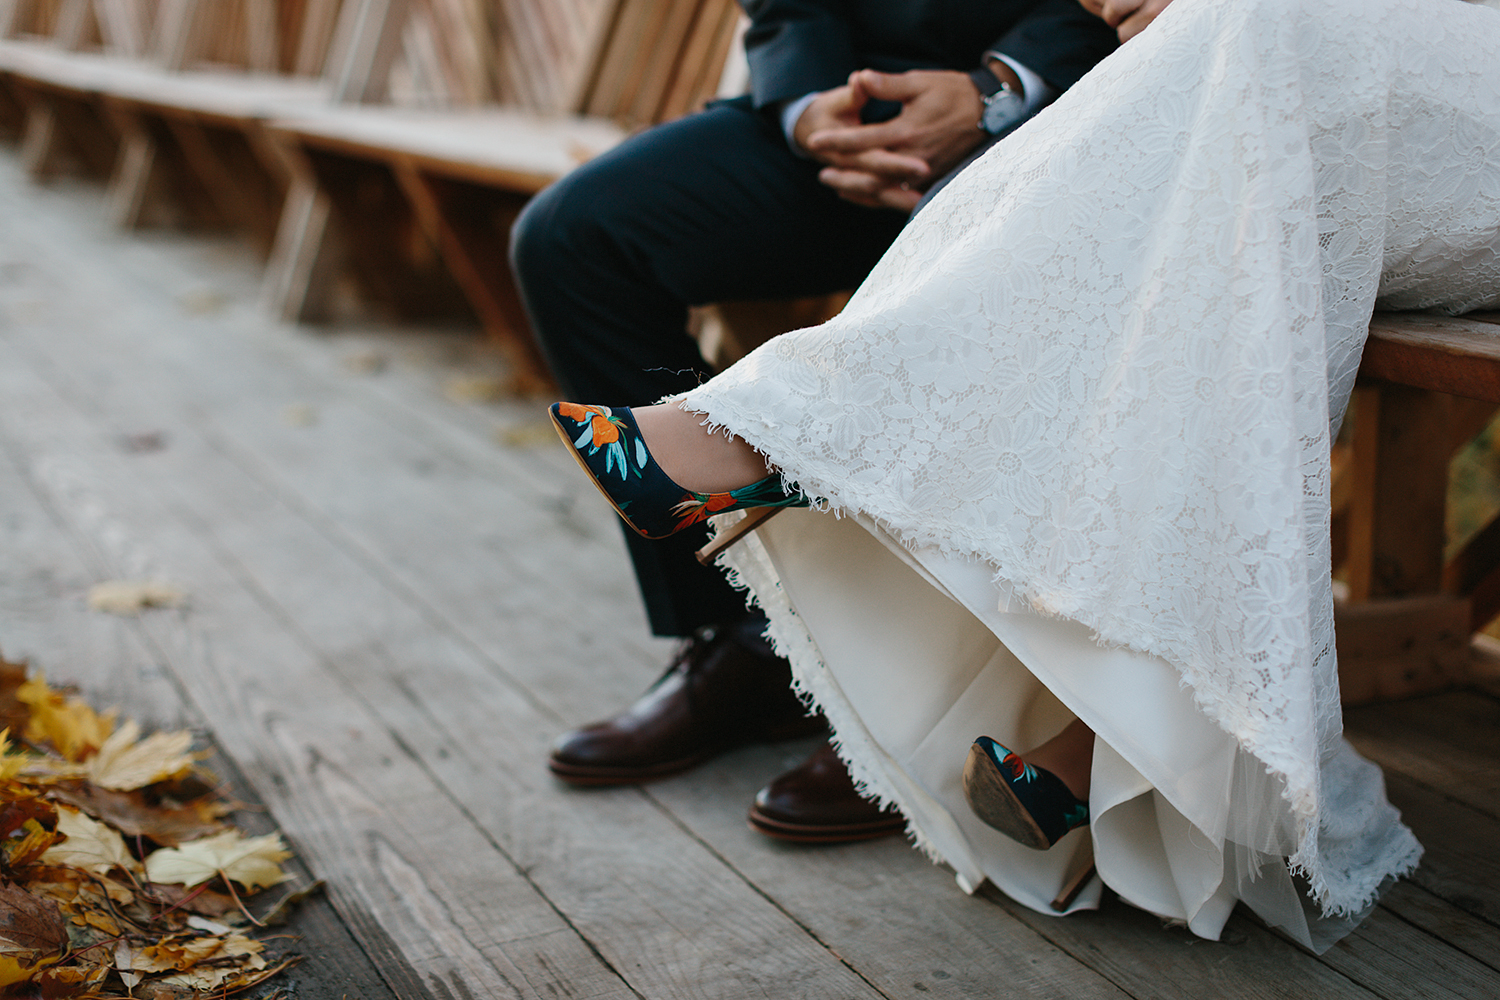 Prince-Edward-County-Wedding-Photographer-Drake-Devonshire-Elopement-Ryanne-Hollies-Photography-junebug-weddings-best-of-the-best-2018-bride-and-groom-portraits-artistic-details-holding-each-other-wood-fence-shoes.jpg